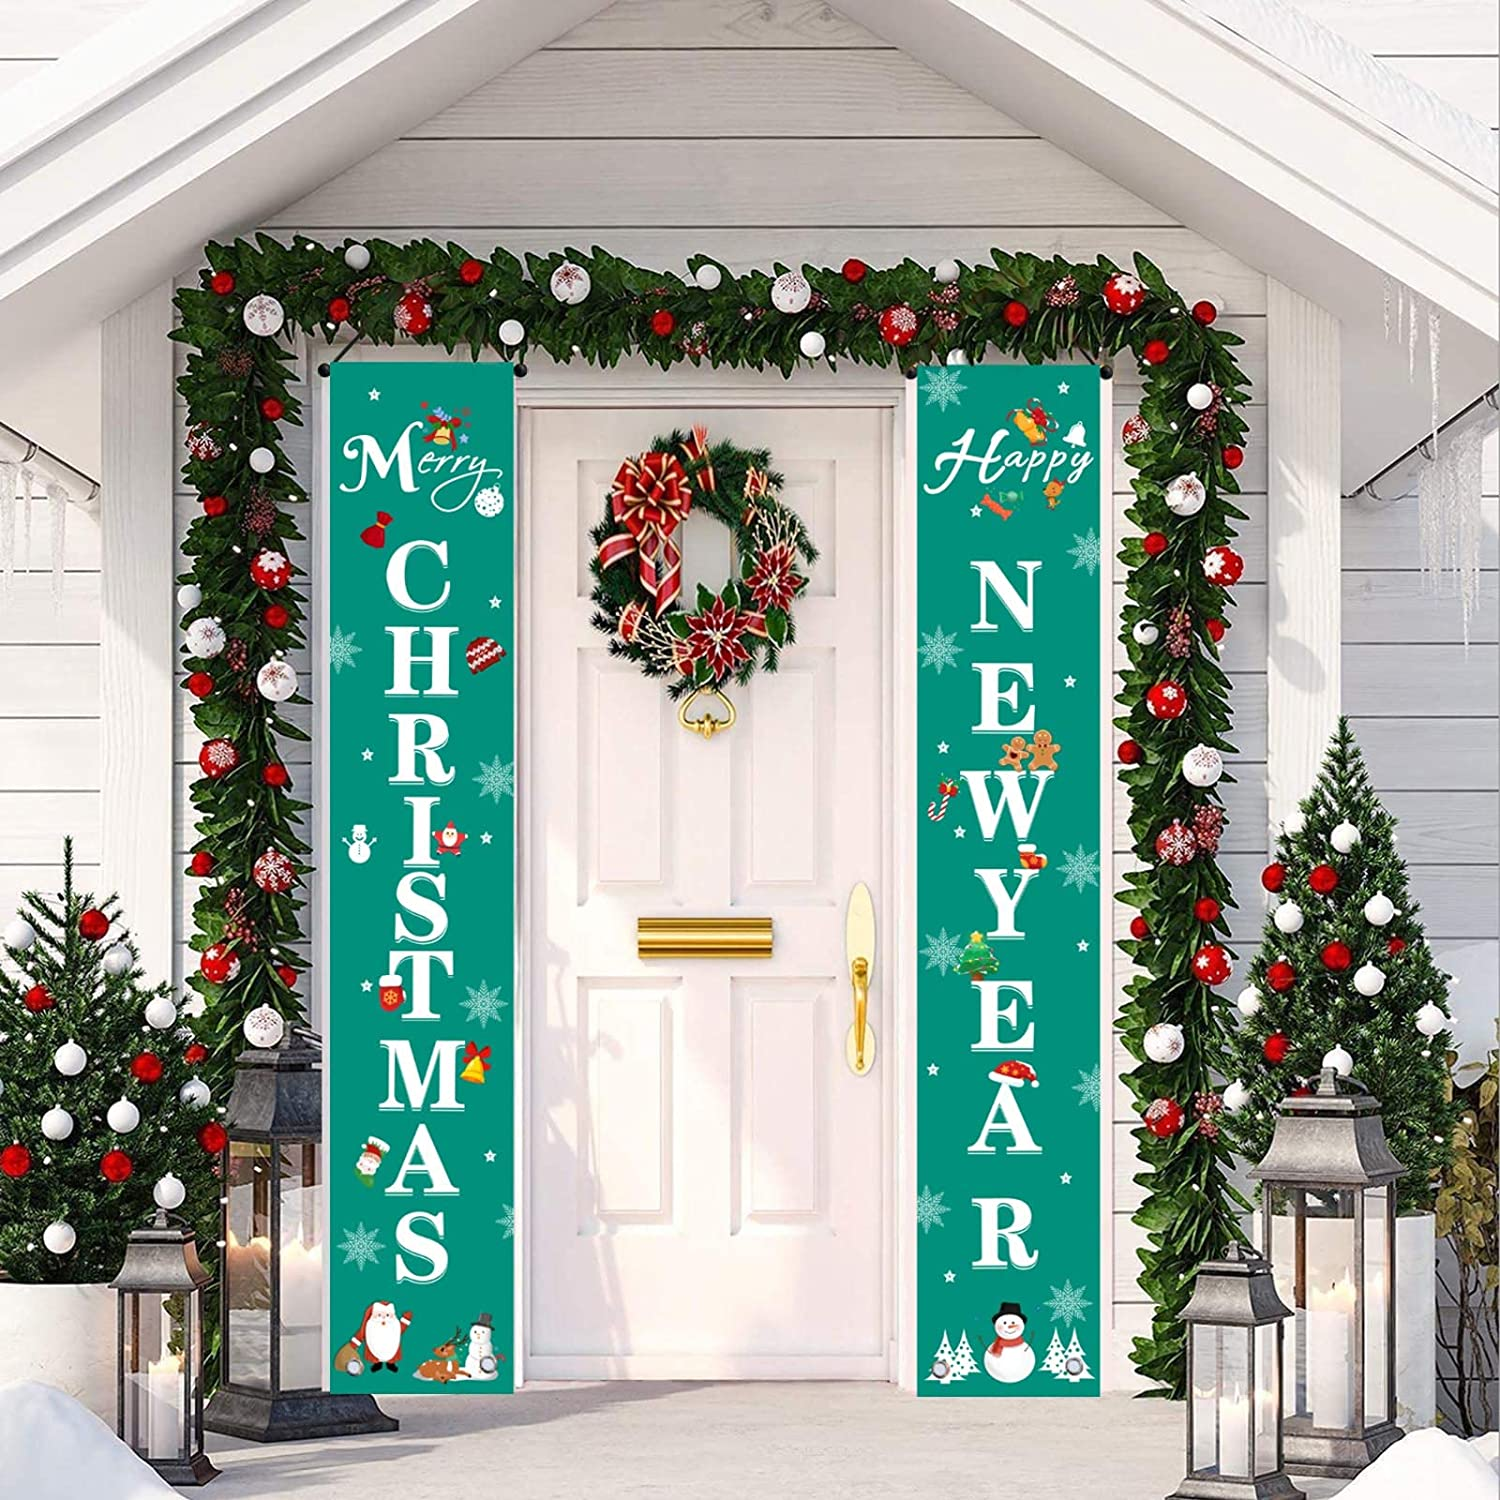 MUSEMET Welcome Christmas Banners, Merry Christmas & Happy New Year Xmas Decor Hanging Couplets with Santa Bell Snowflake Pattern for Front Door, Porch, Indoor, Home, New Year Welcome Signs (Green)